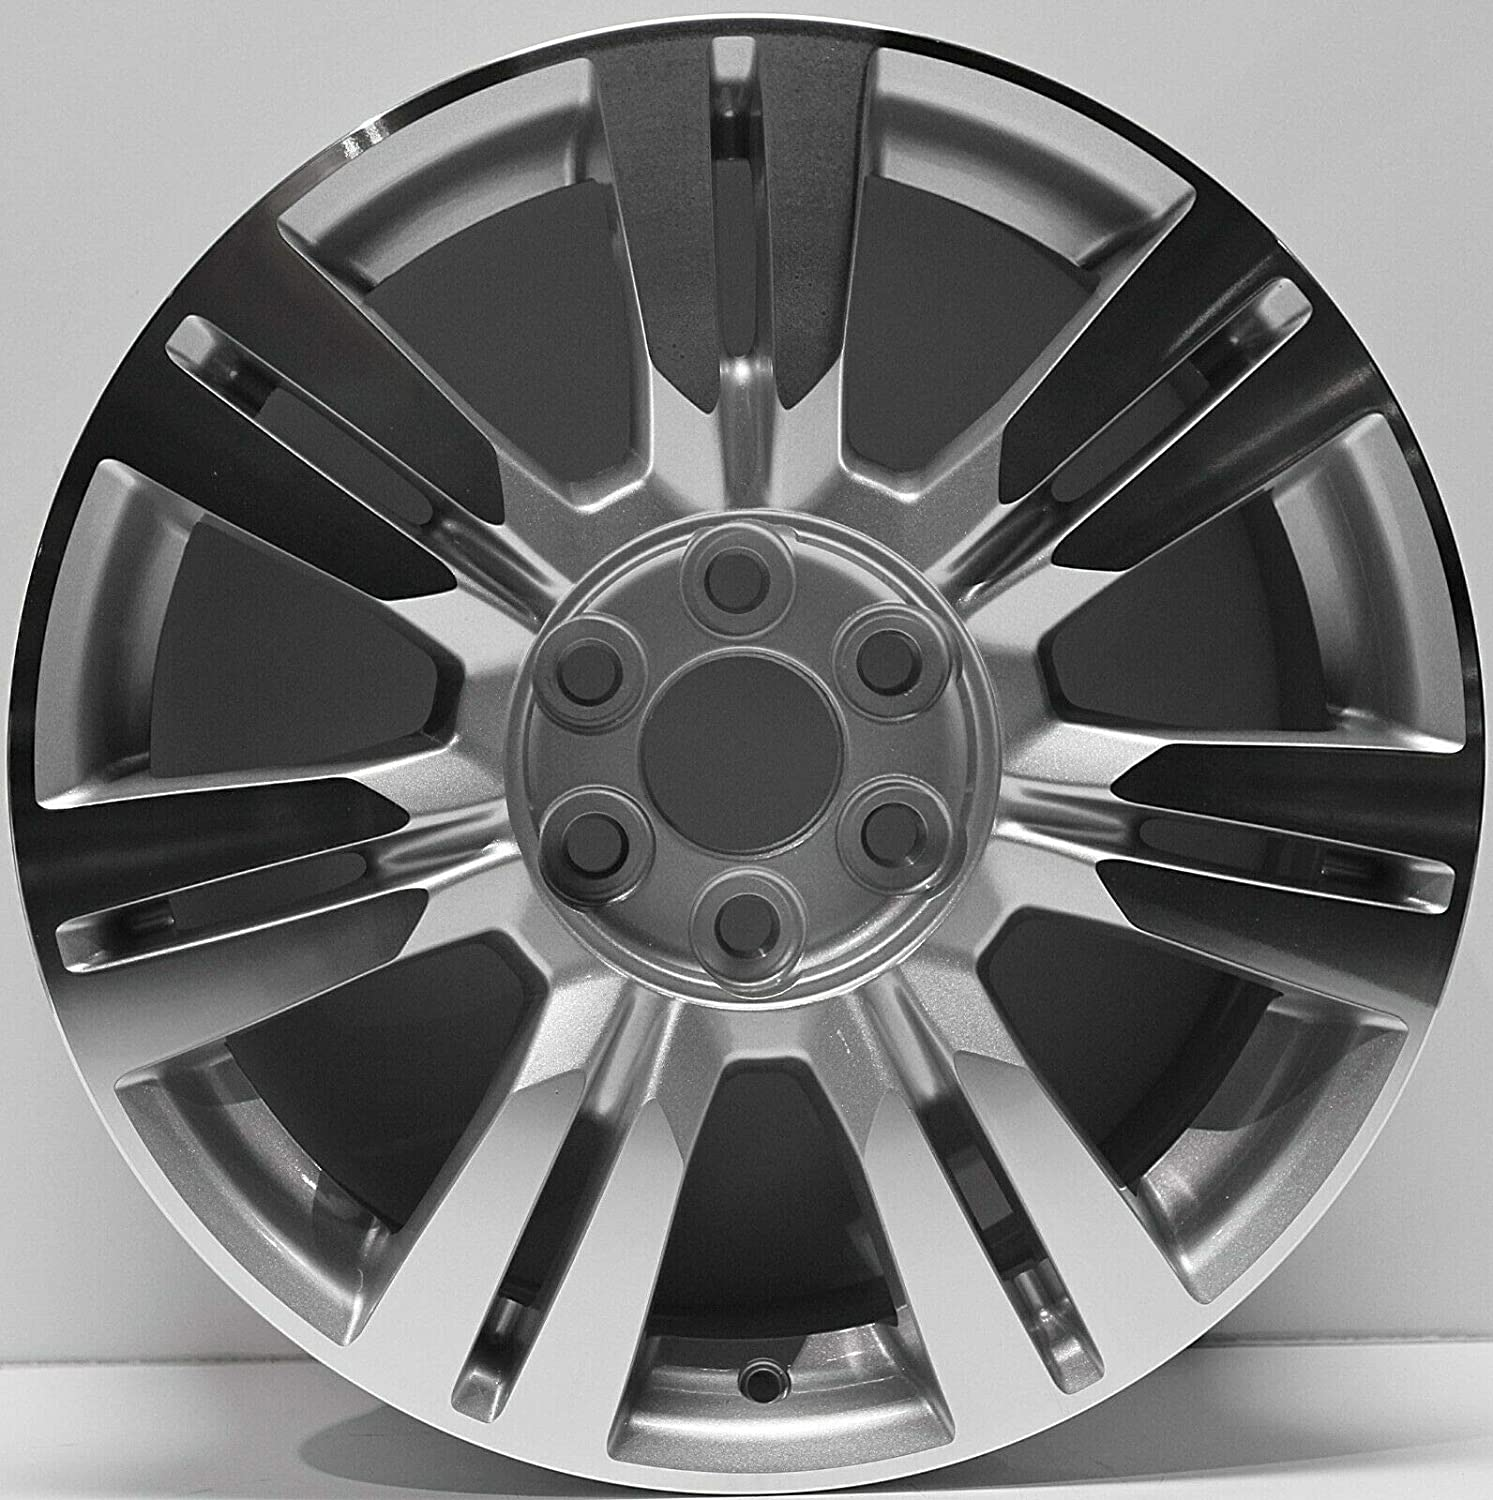 to 67.1mm Wheel | Hubcentric Center Ring 67.1mm to 76MM for many Mitsubishi Mazda Kia Hyundai NB-AERO 4pc Silver Aluminum Hubrings 76mm Hub